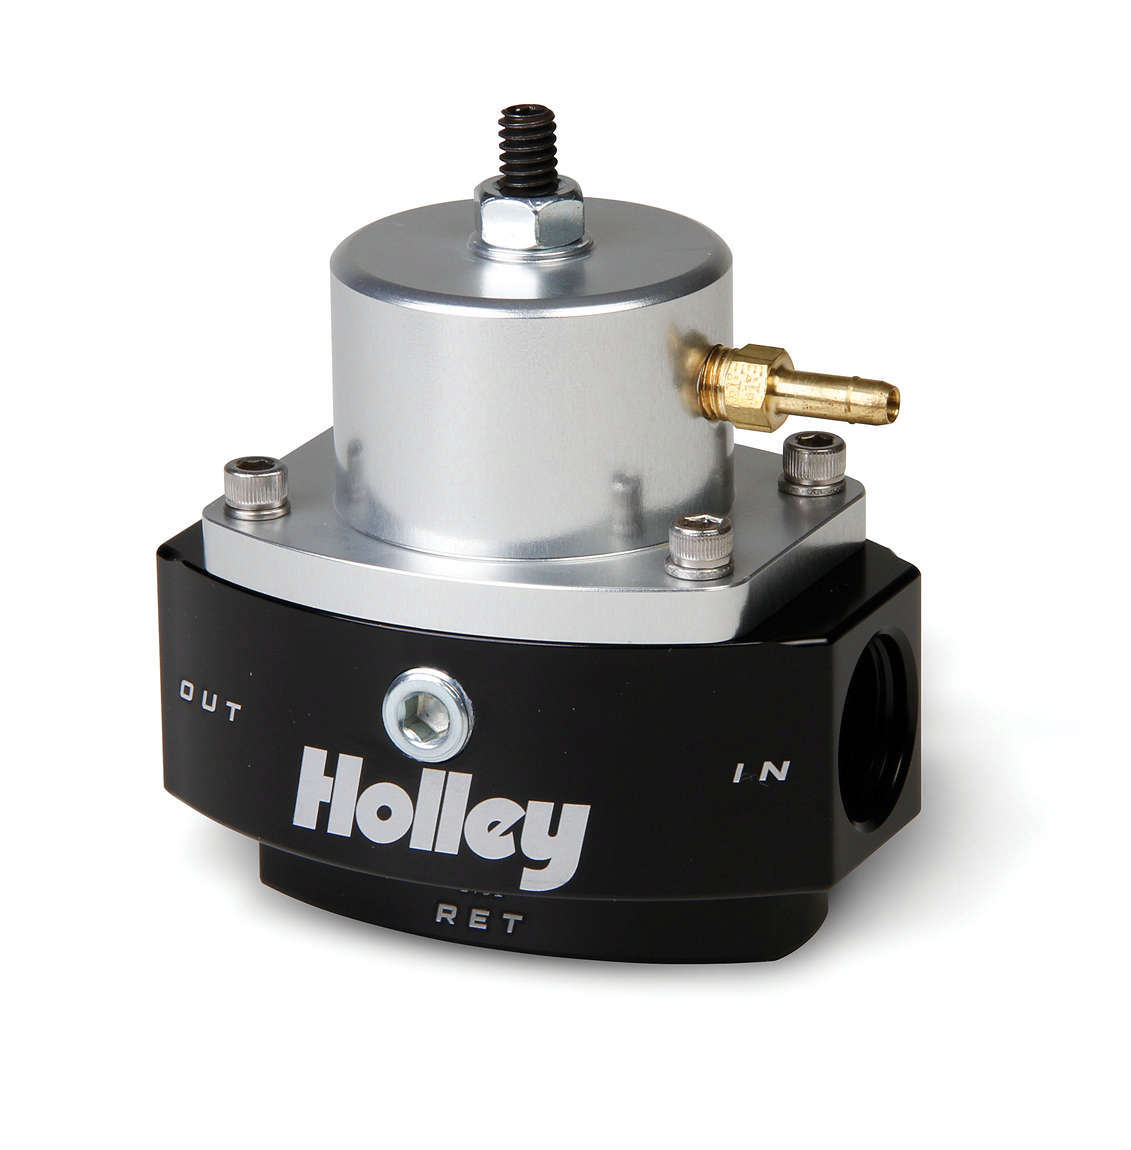 Holley 12-846 Fuel Pressure Regulator, HP Billet, 15 to 65 psi, In-Line, 8 AN Female O-Ring Inlet, 8 AN Female O-Ring Outlet, 6 AN Female O-Ring Return, 1/8 in NPT Port, Bypass, Aluminum, Black / Clear Anodized, Diesel / E85 / Gas, Each